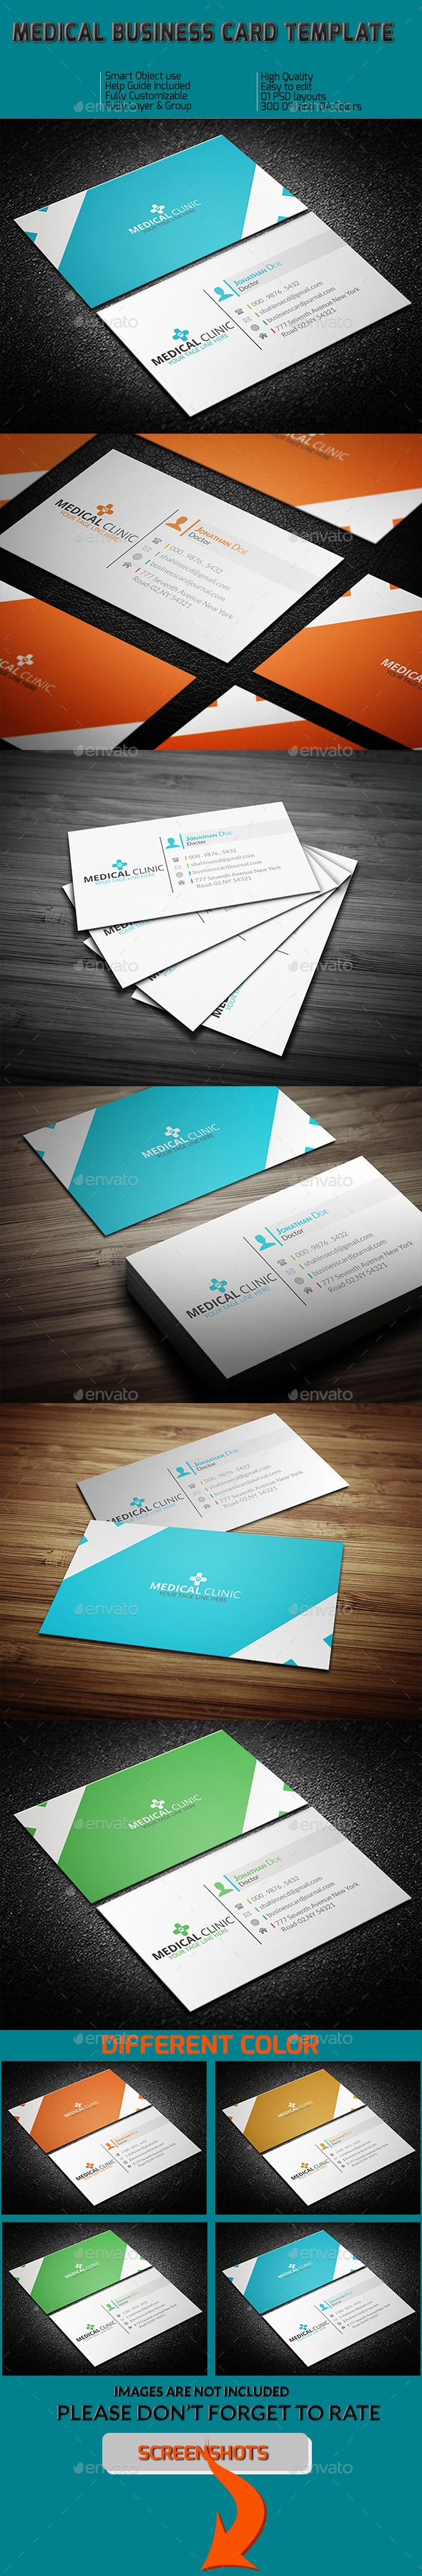 110 best bussines cards ideas images on Pinterest